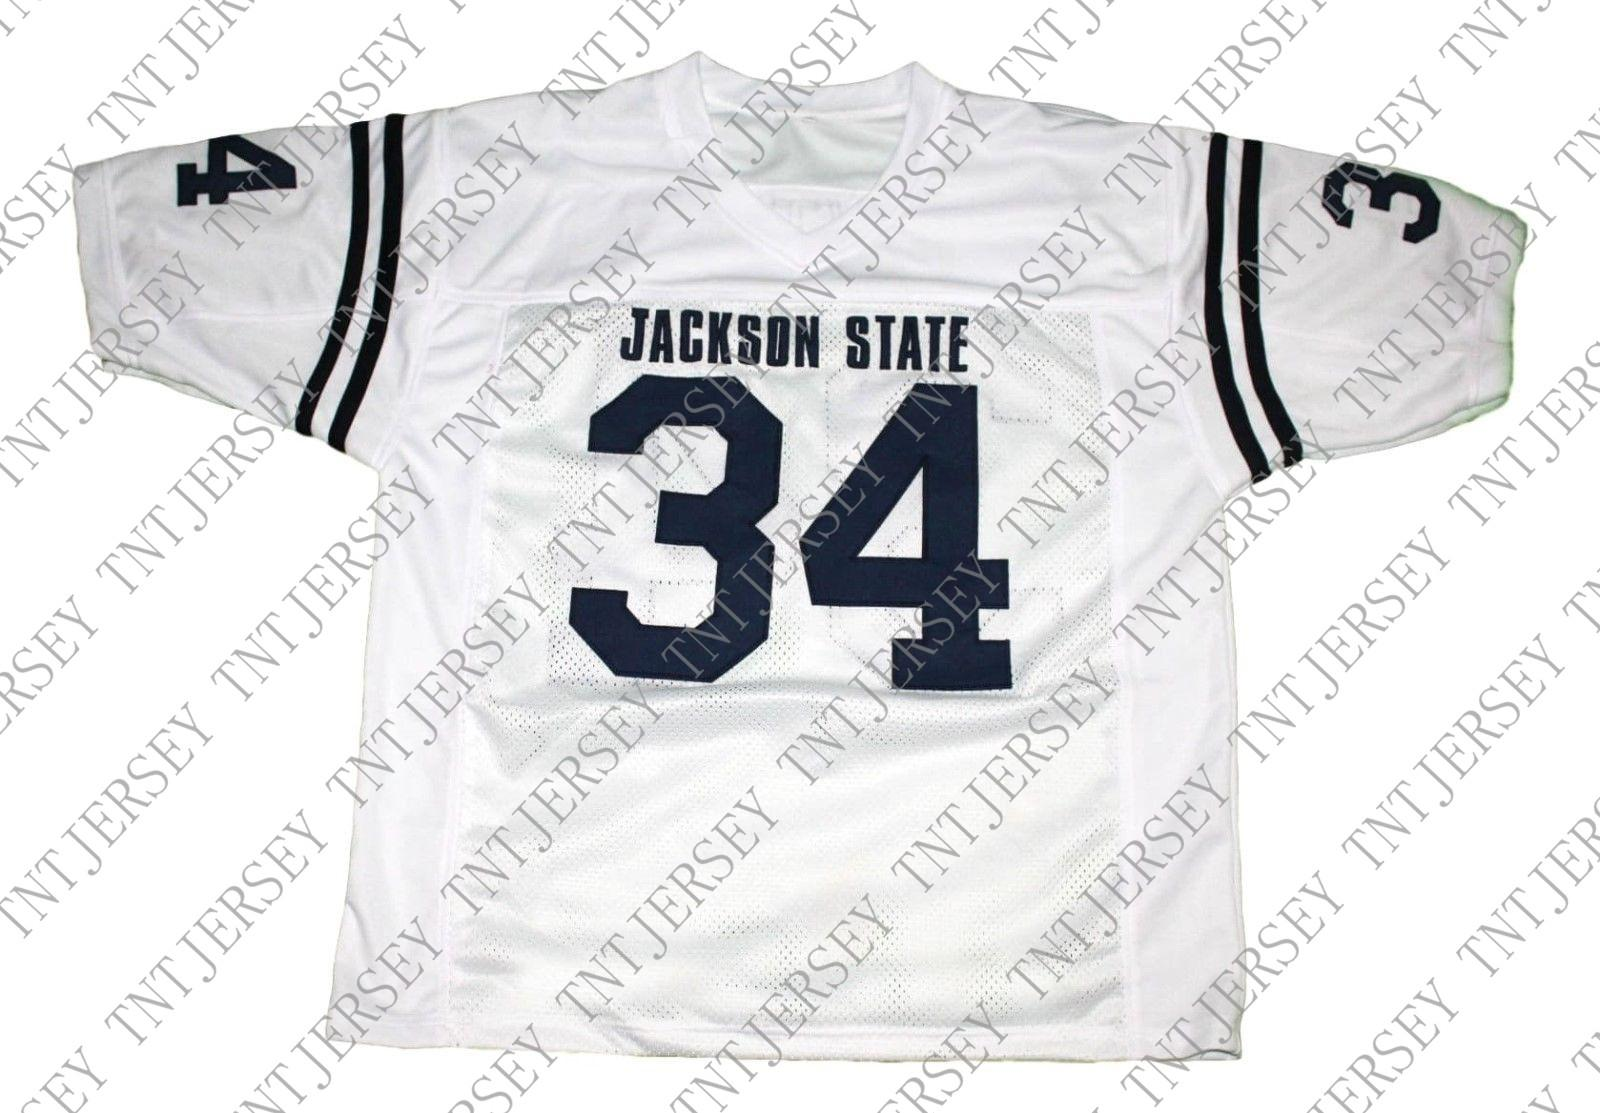 promo code 0446e 75c59 wholesale Walter Payton #34 Jackson State New Football Jersey White  Stitched Custom any number name MEN WOMEN YOUTH Football JERSEY